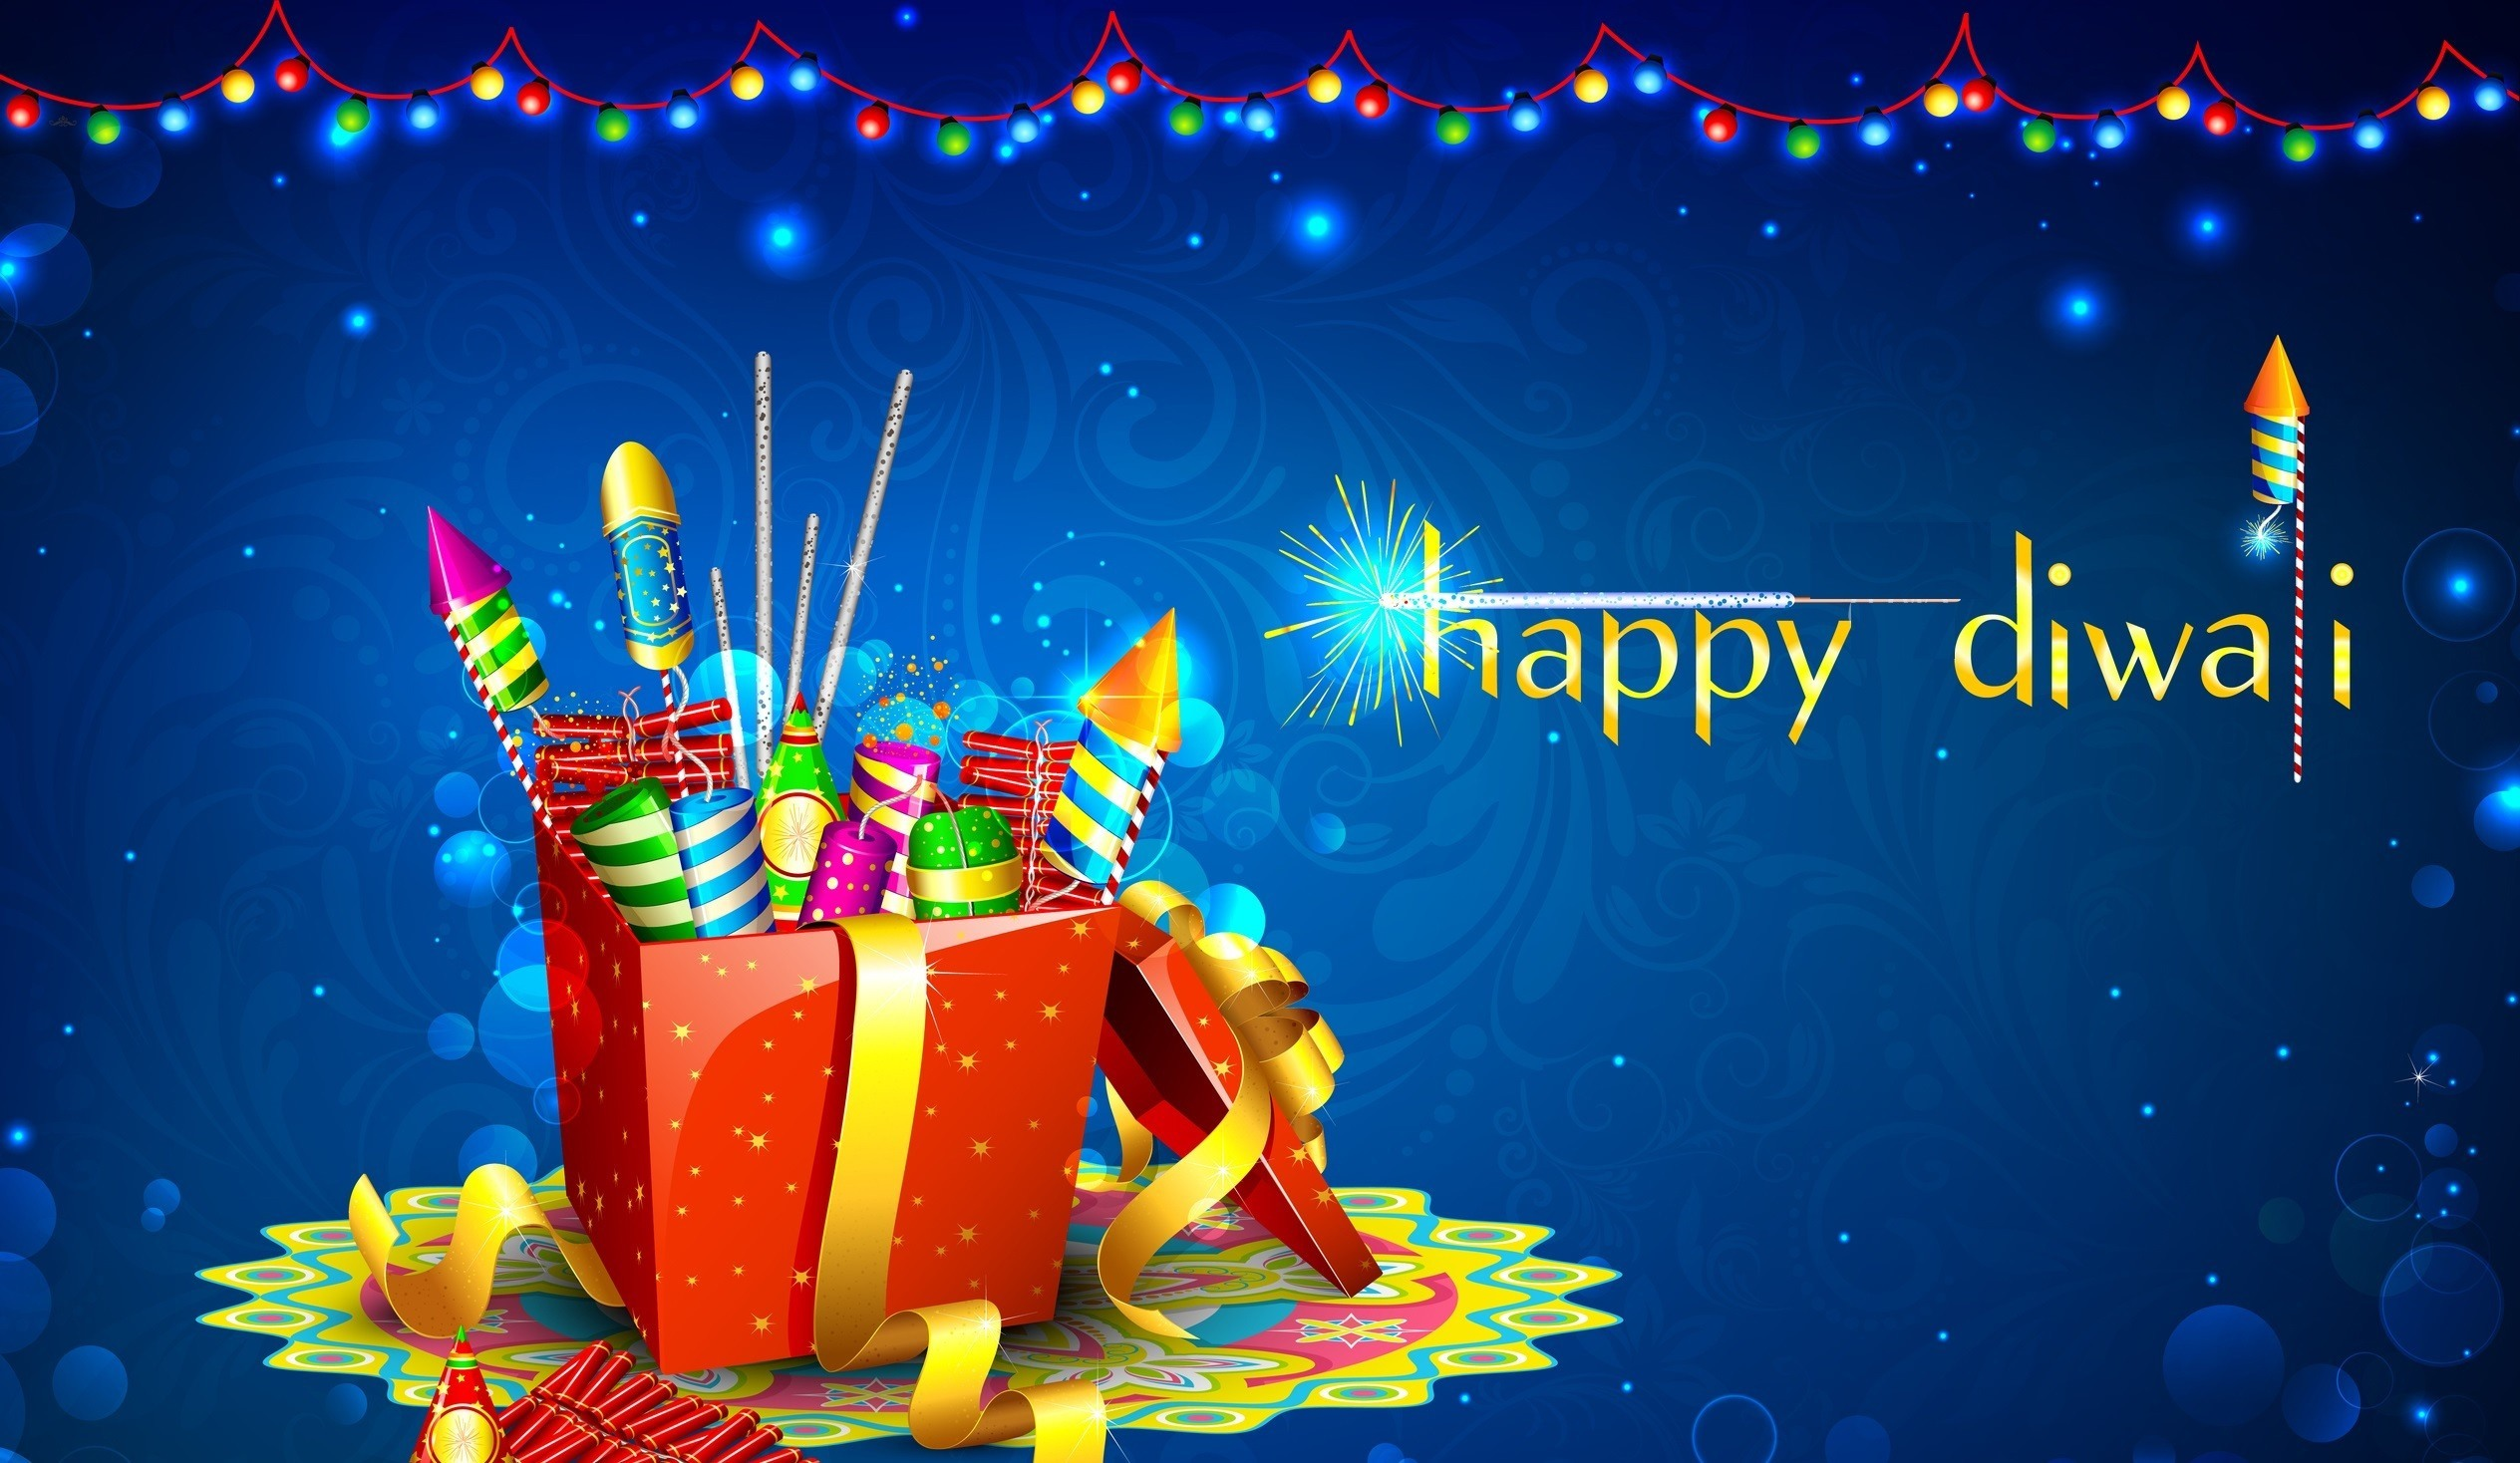 Happy diwali images 2015 diwali wallpapers hd free - Hd wallpaper happy diwali ...